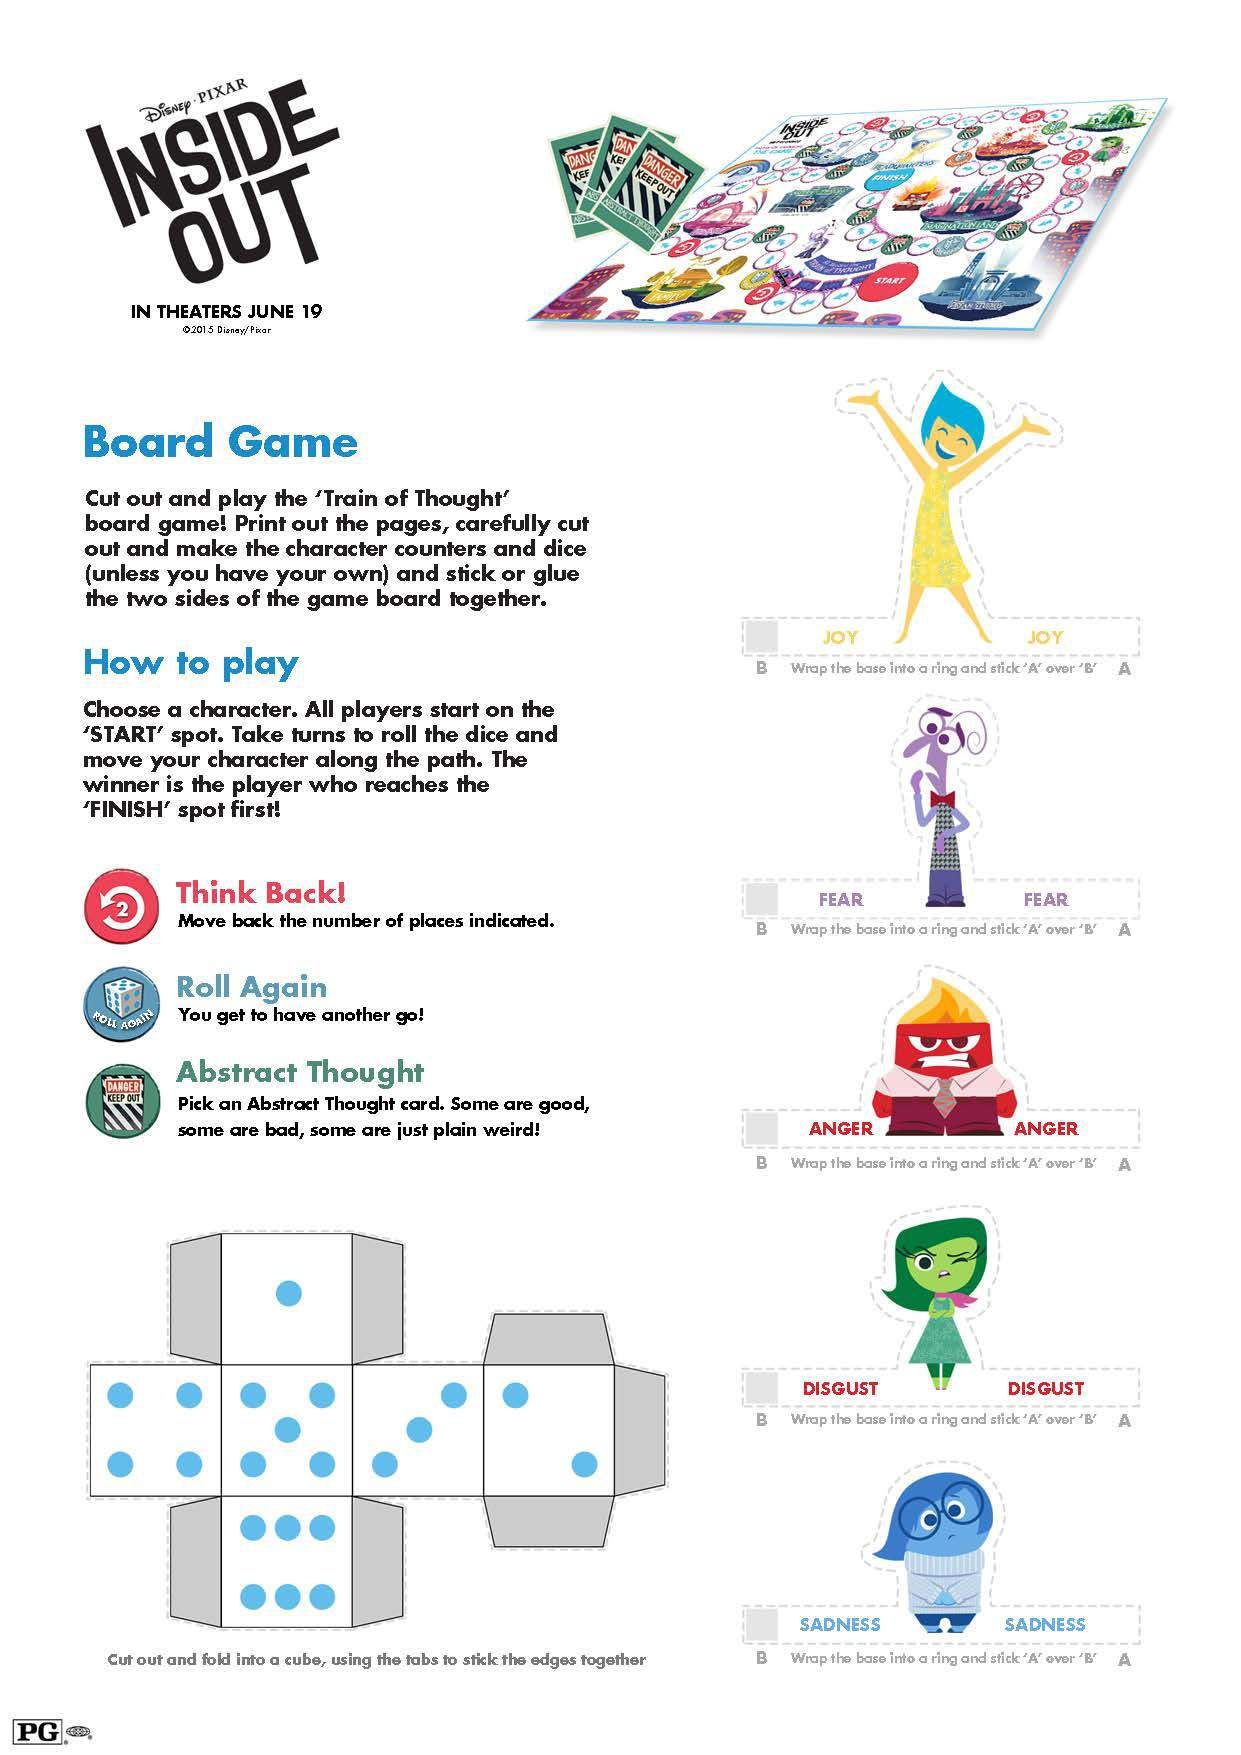 Free Disney Printables And Activity Pages   All Things Parenting - Free Printable Recovery Games